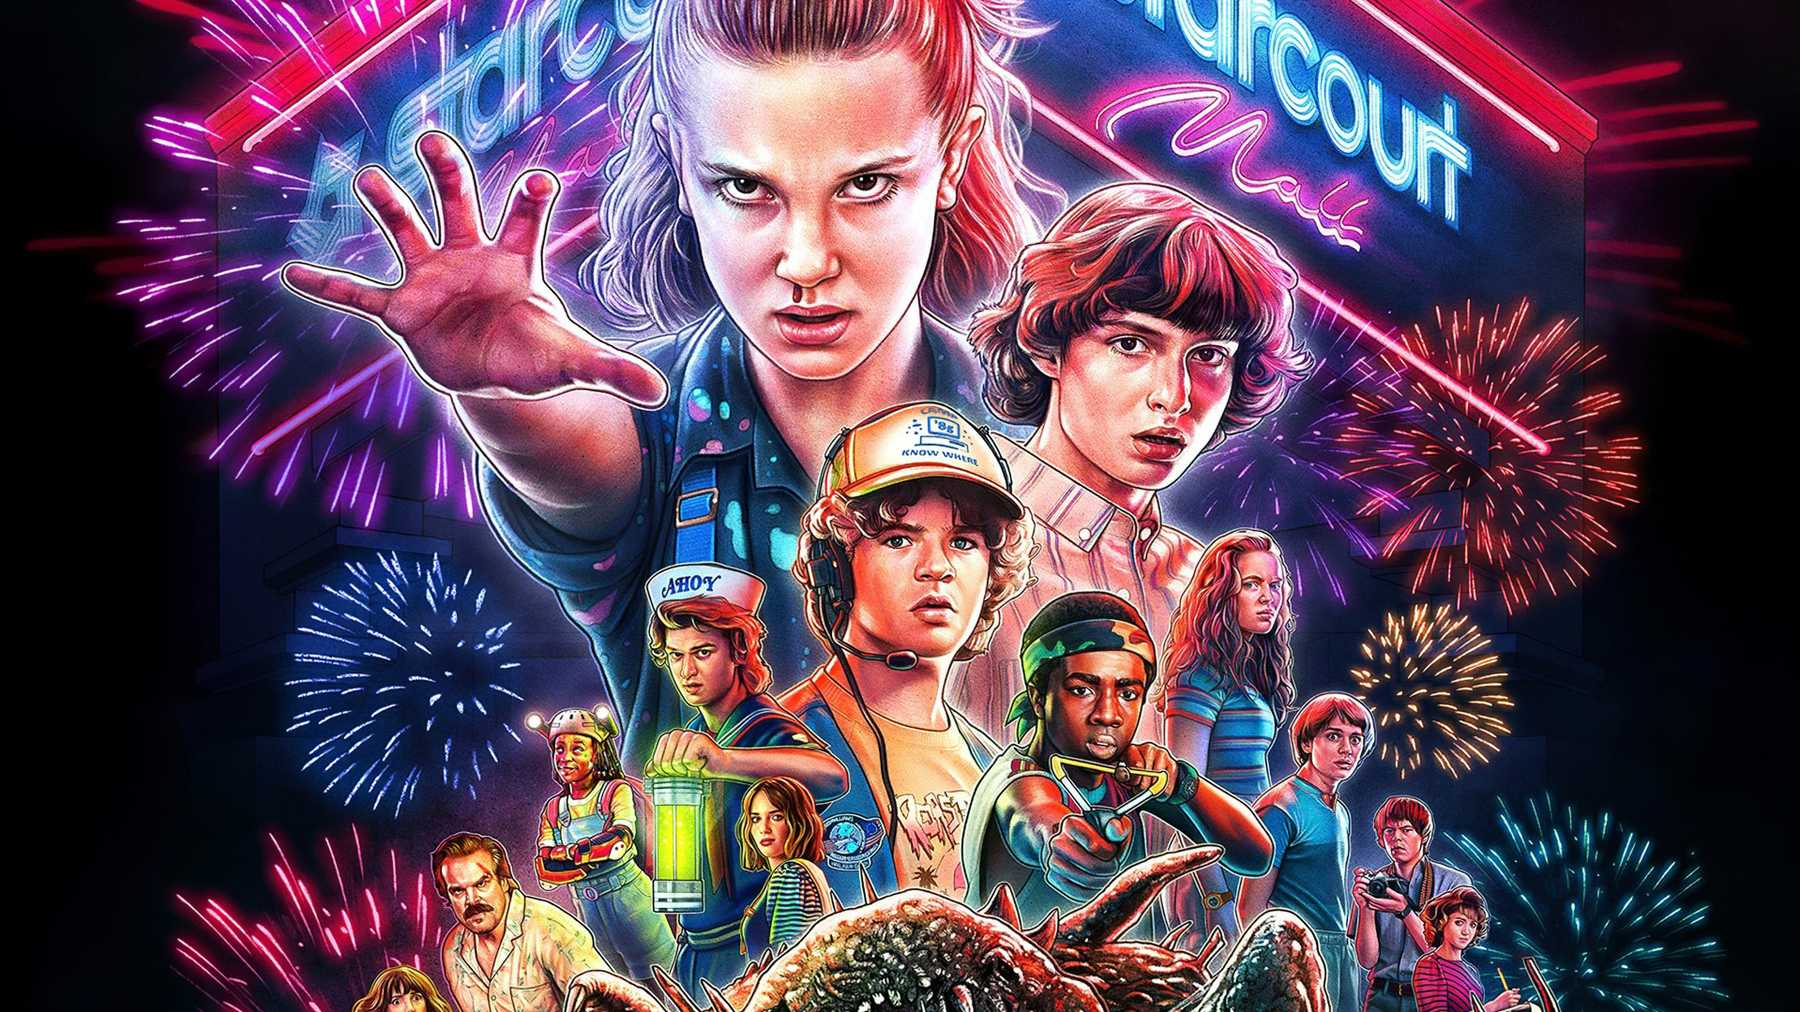 Directors of Endgame Suggests Collaboration with Stranger Things Creators